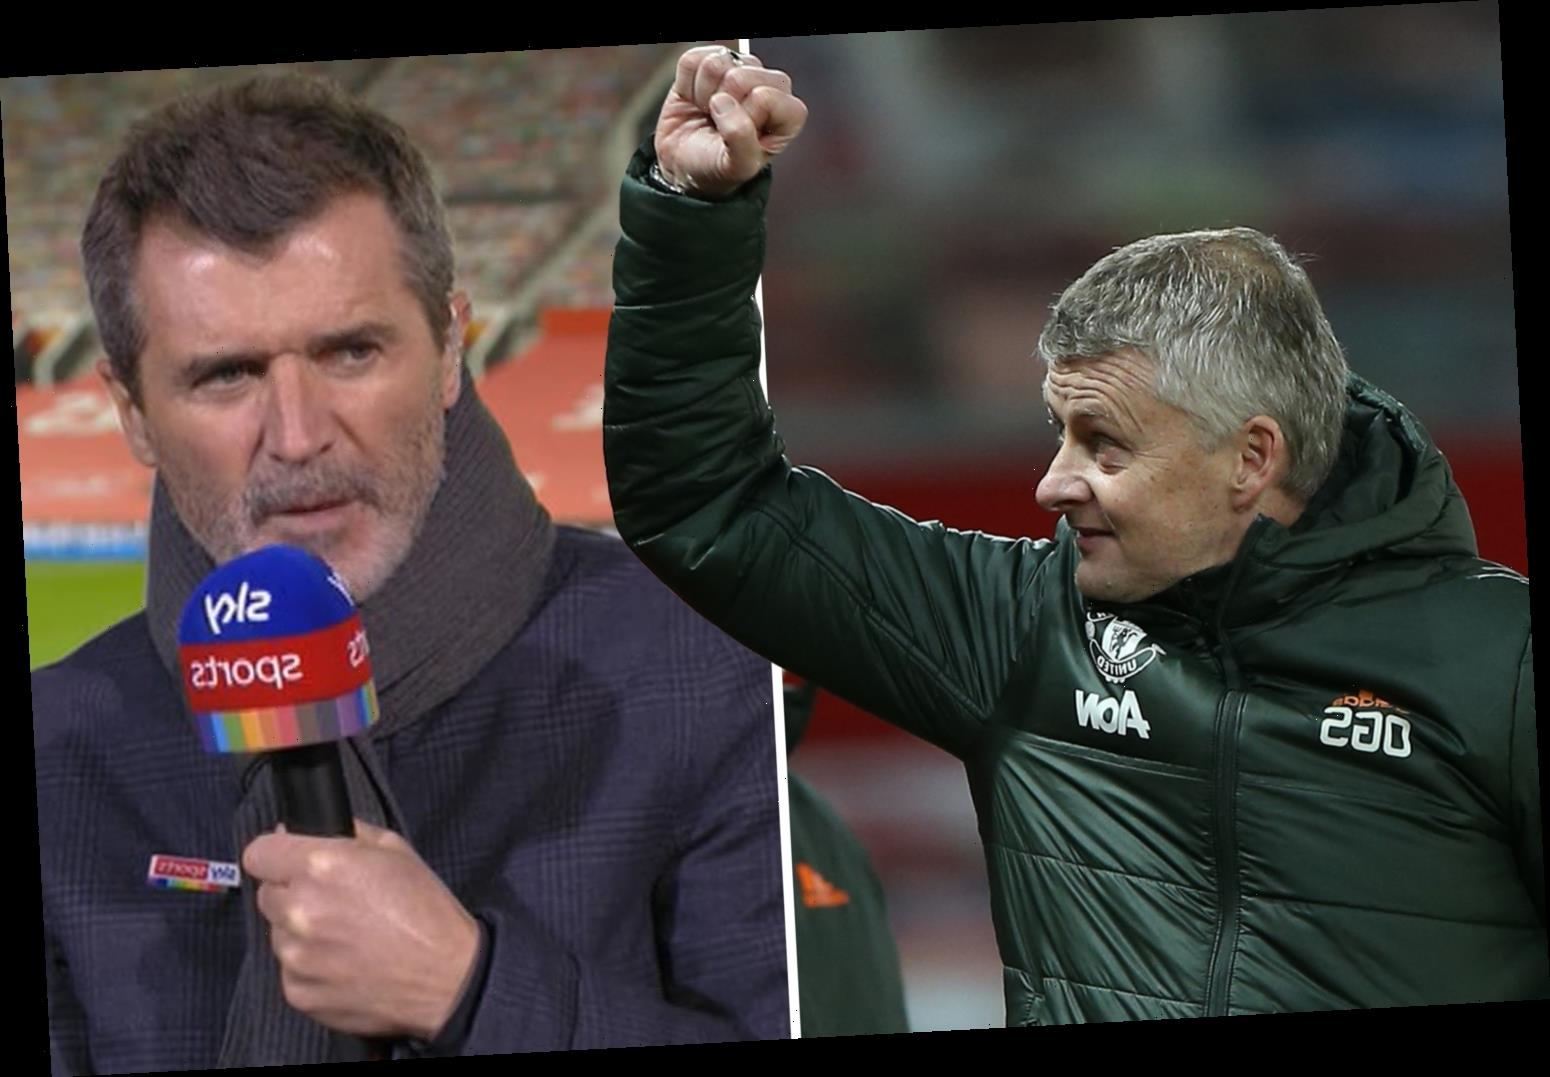 Man Utd are Liverpool's biggest threat for Premier League title ahead of Chelsea and City, claims Roy Keane